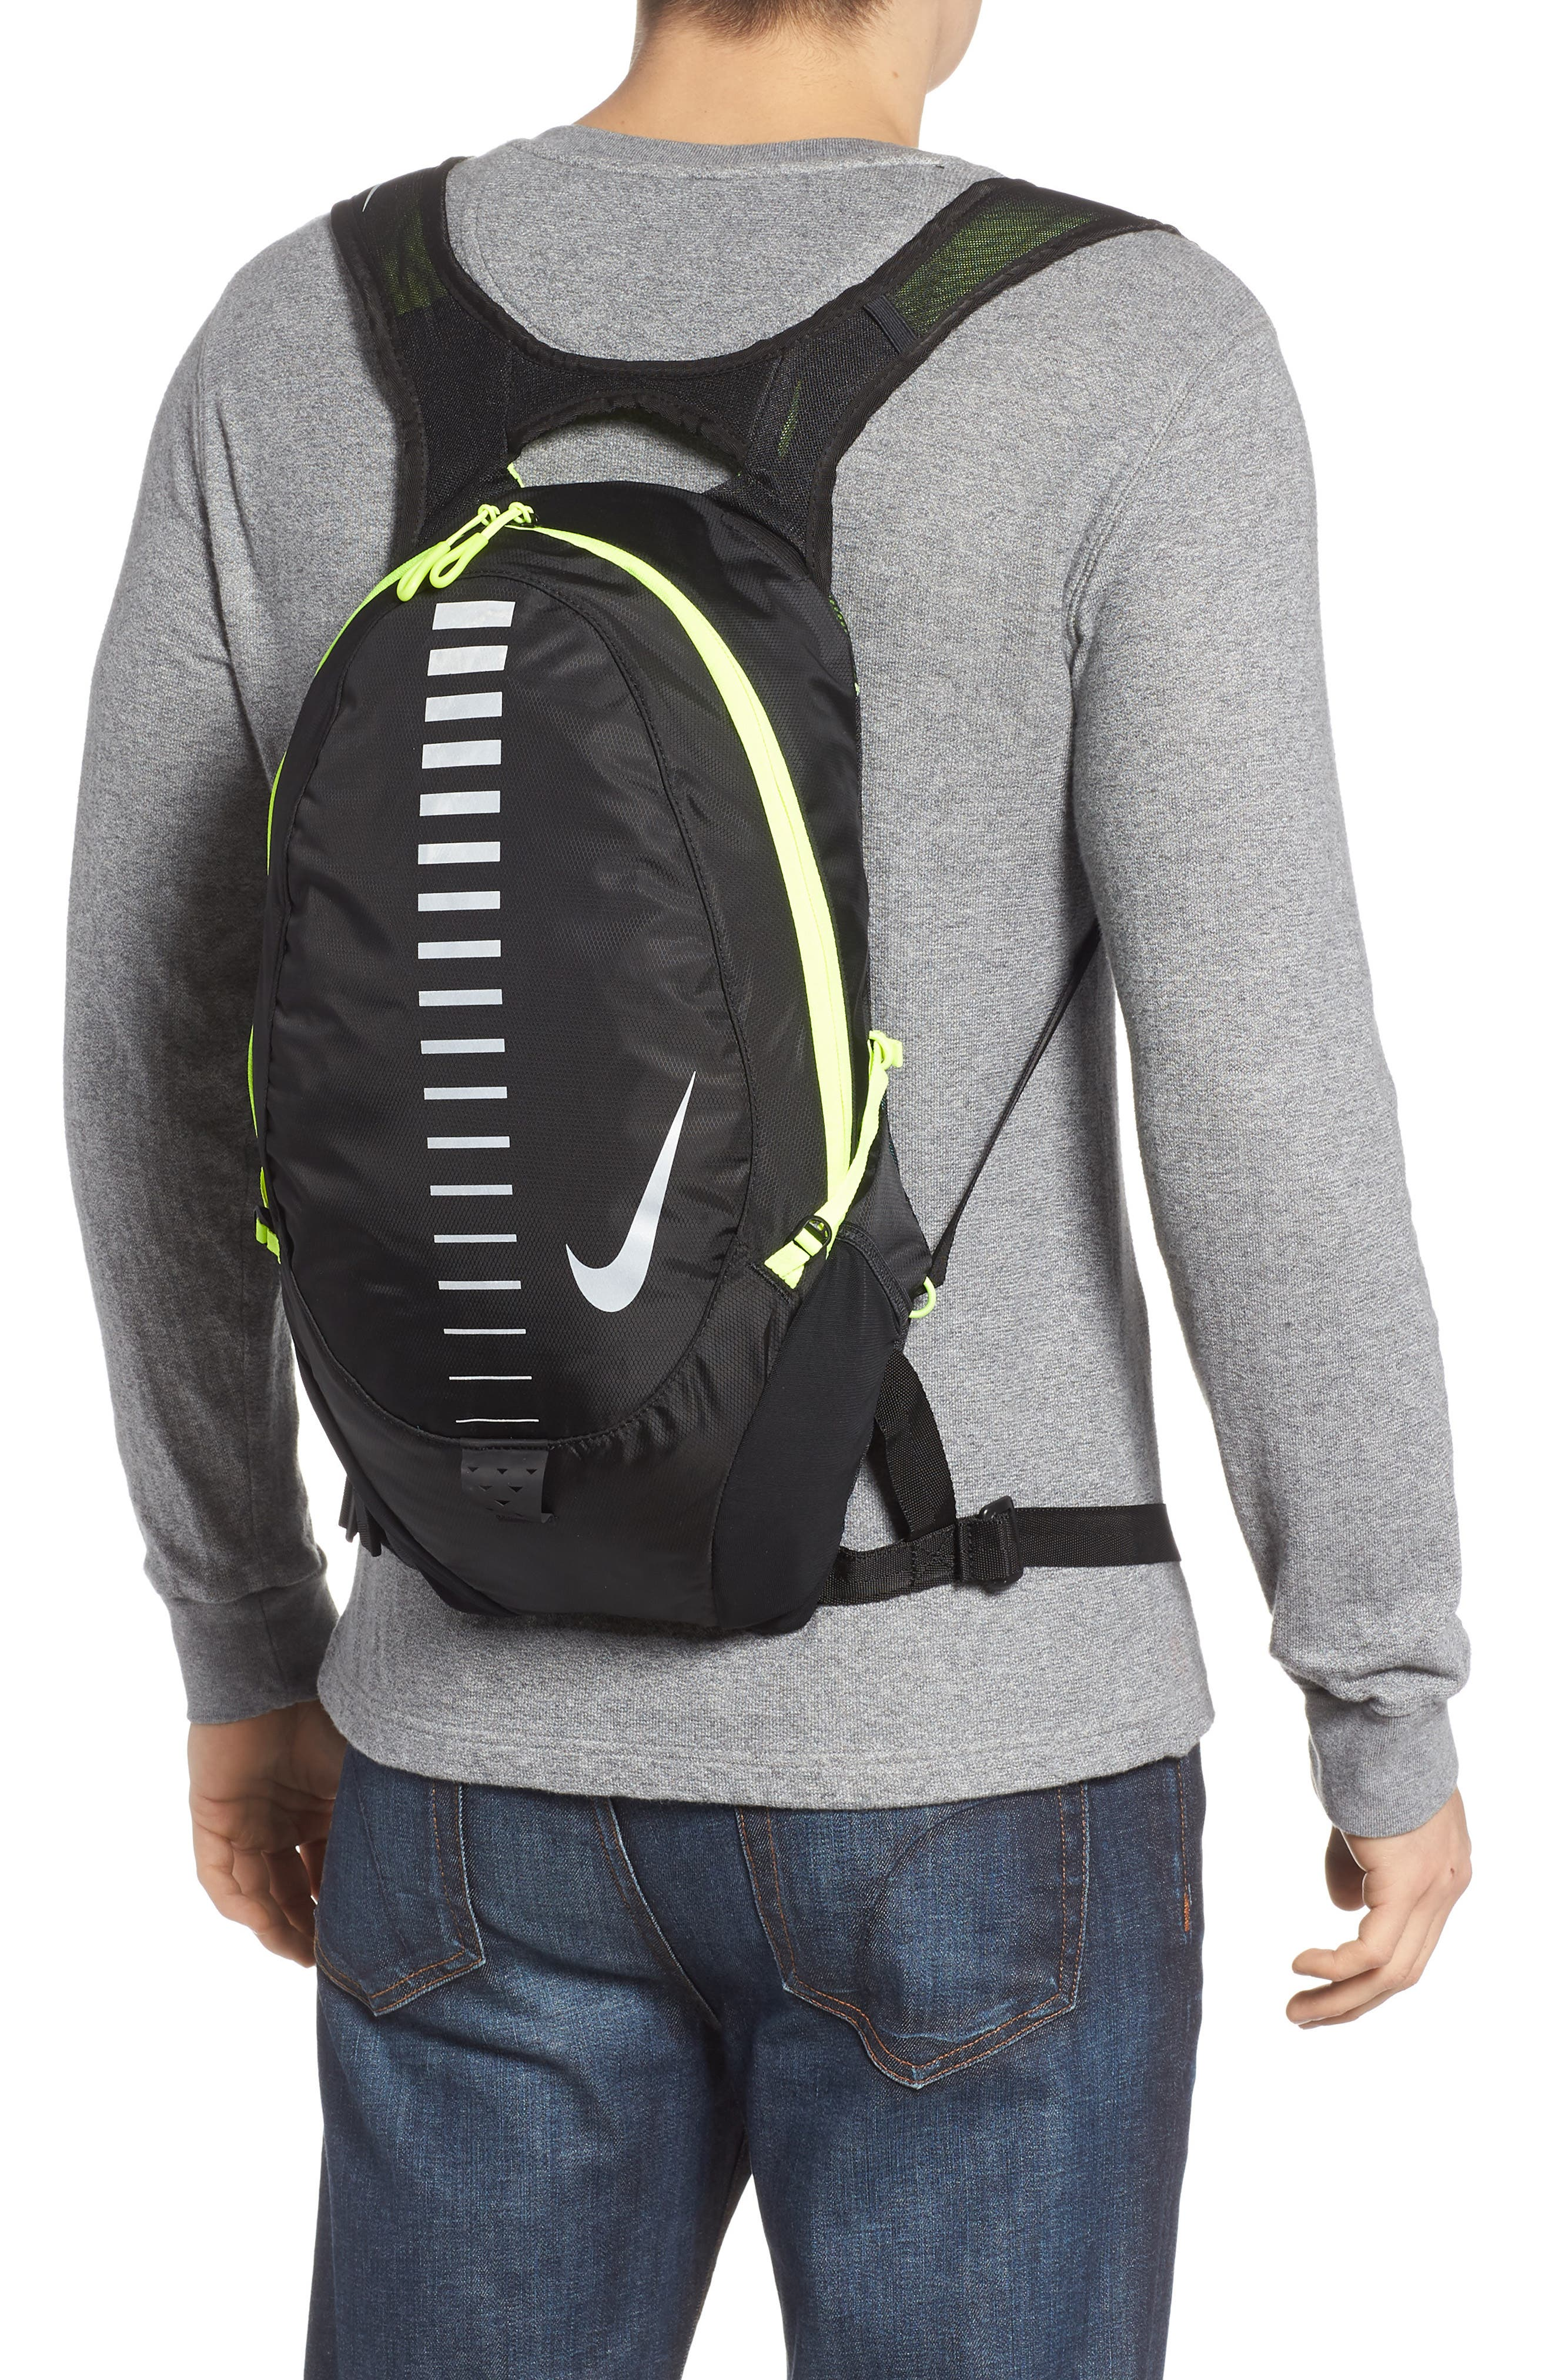 Run Commuter Backpack,                             Alternate thumbnail 2, color,                             Black/ Volt/ Silver